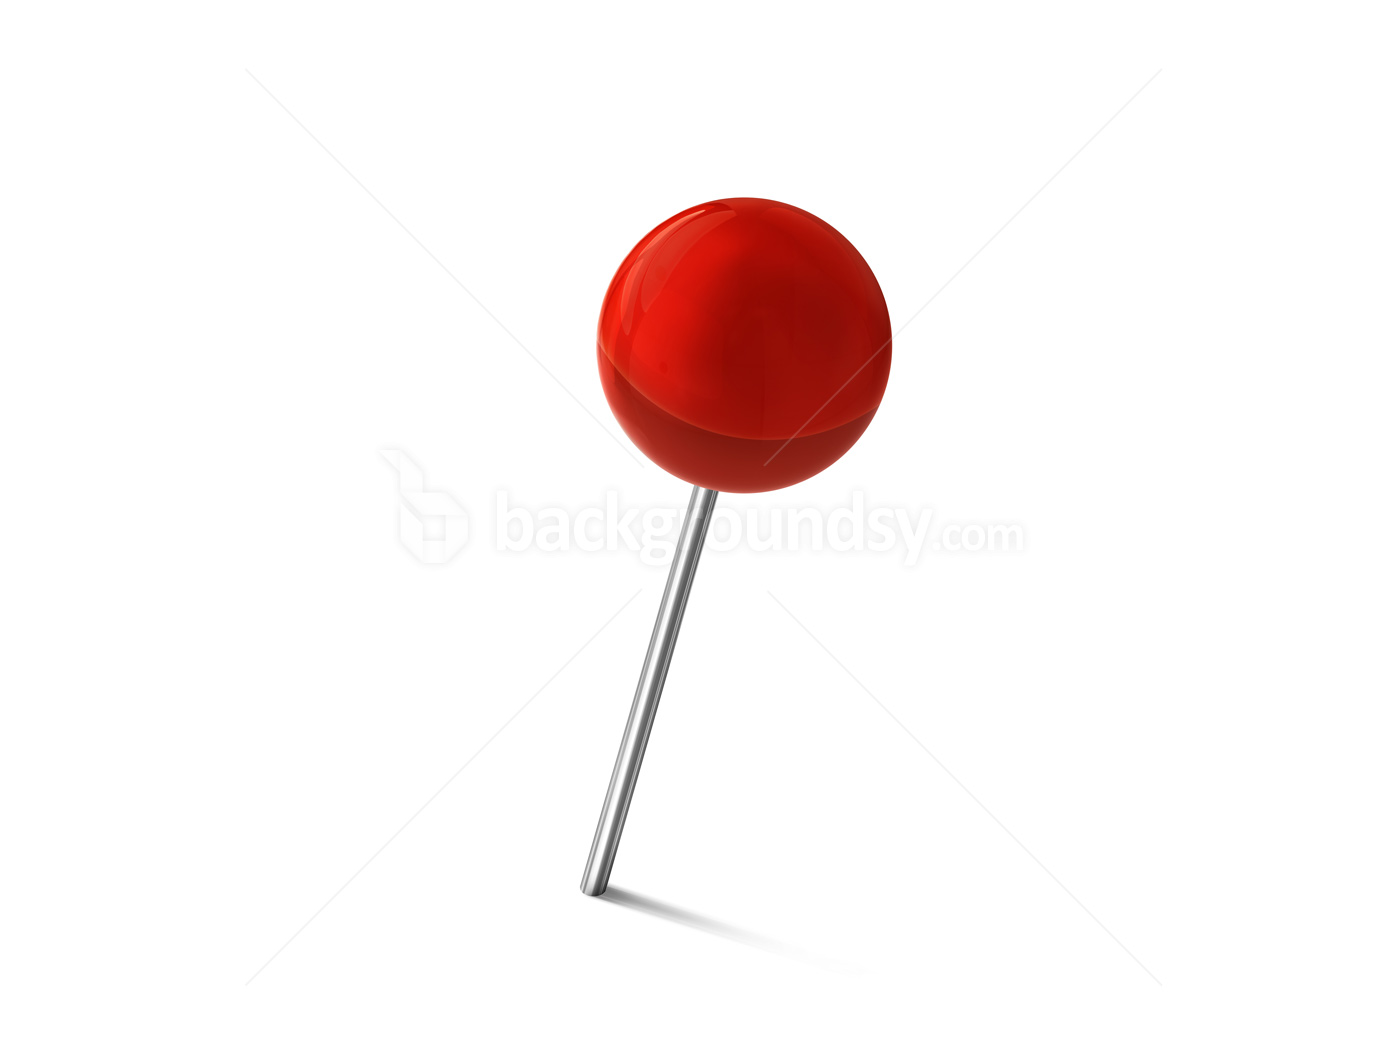 Pushpin Png Hd Background Transparent image #27701